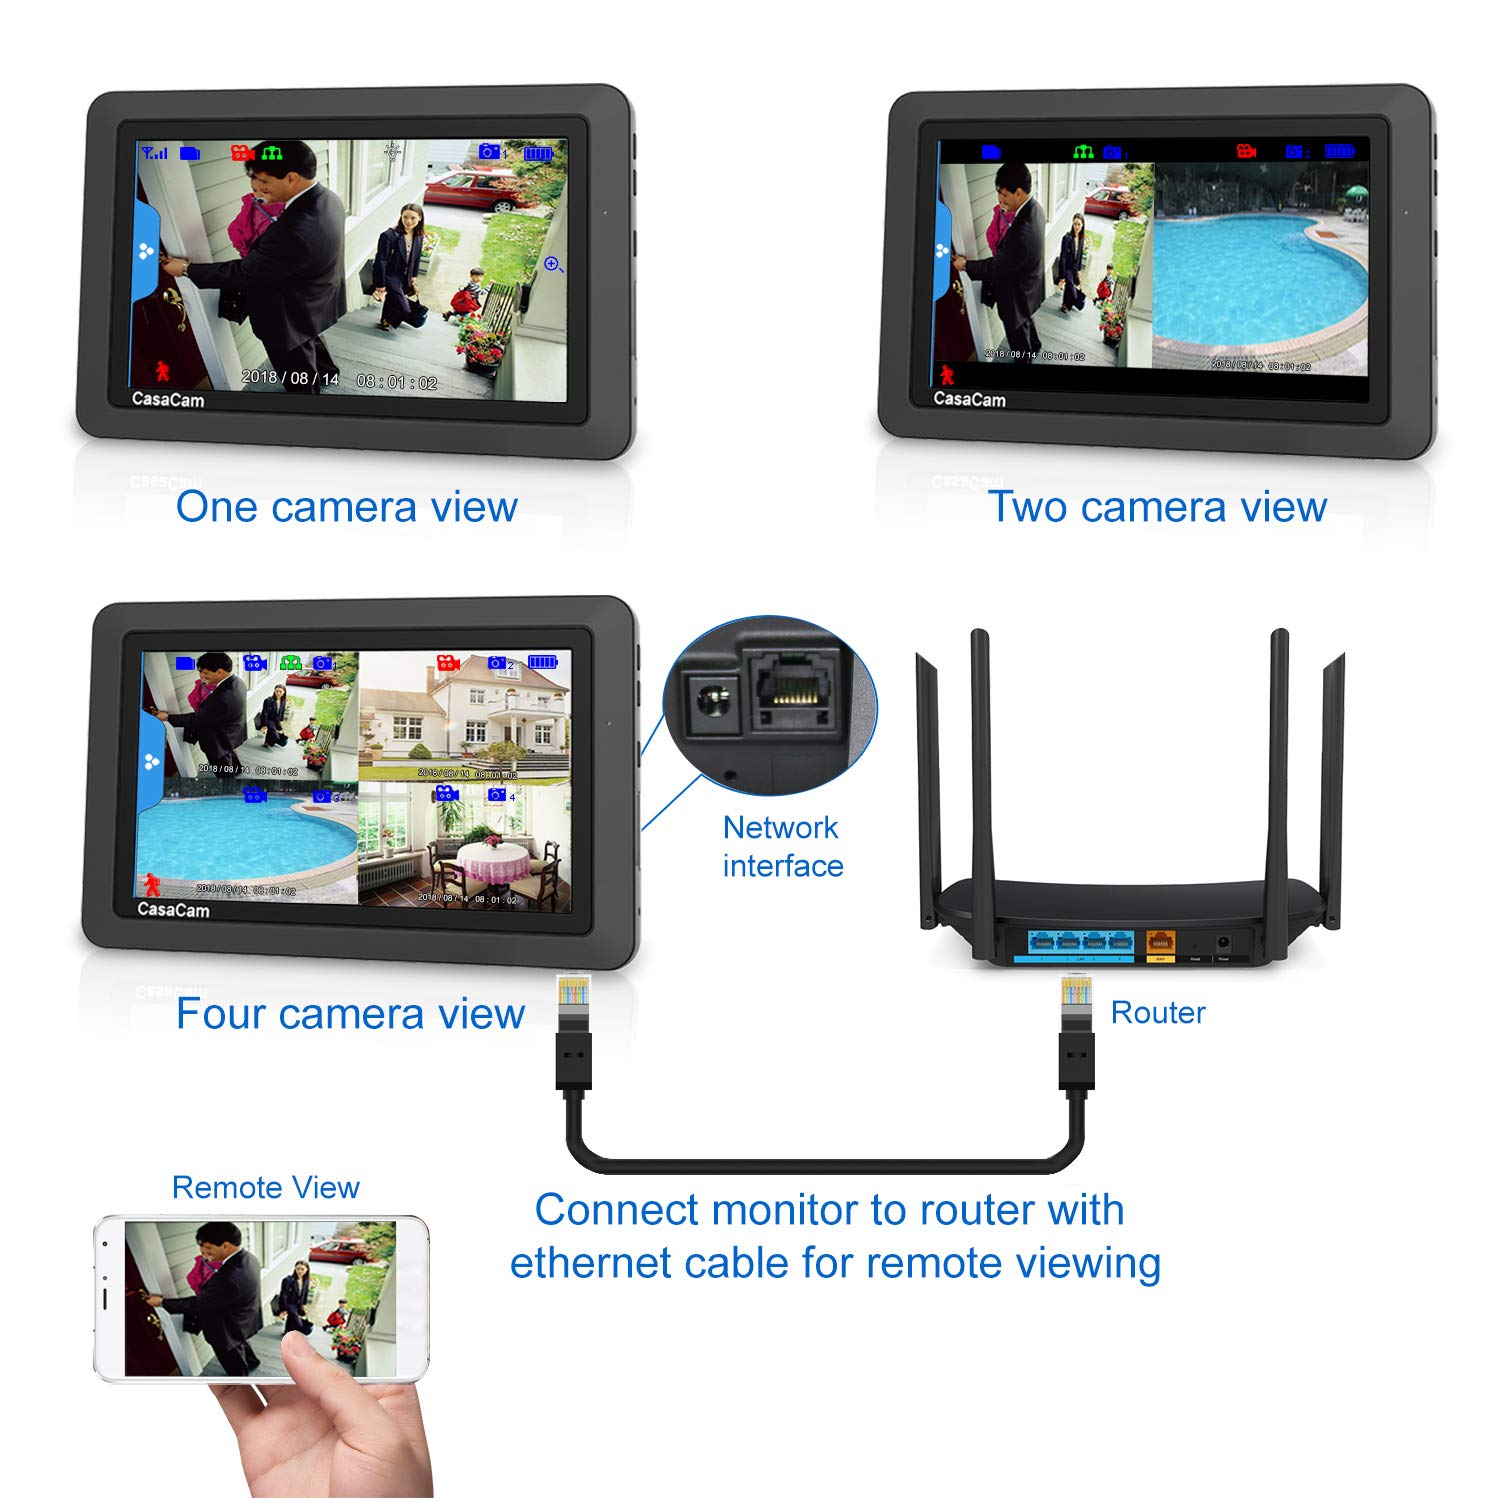 CasaCam VS802 Wireless Security Camera System with AC Powered HD Nightvision Cameras and 7'' Touchscreen Monitor (2-cam kit) by CasaCam (Image #3)